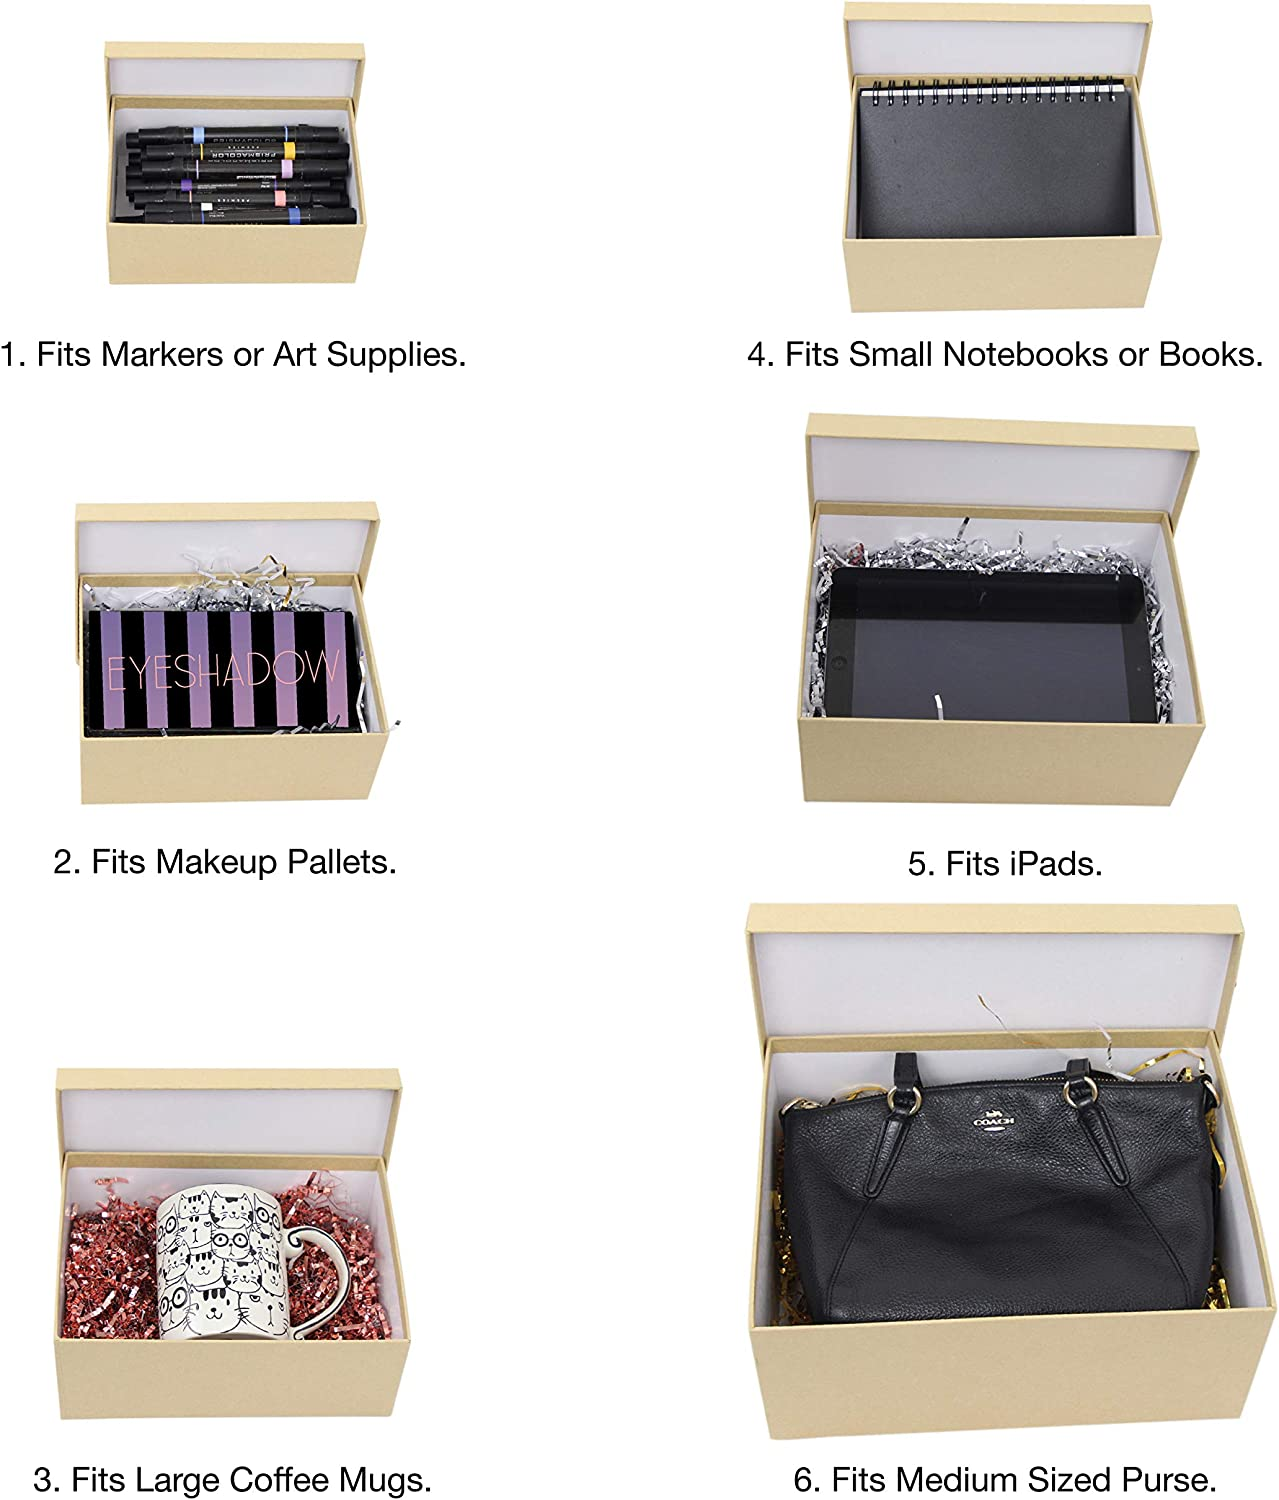 Rigid Lid Durable Reusable For Gift Wrapping Holiday Present Christmas Birthday Party Assorted S-XL UNIQOOO 10Pcs Black Nesting Gift Boxes Set Cardboard Rectangle Storage Organizer Florist Rose Box